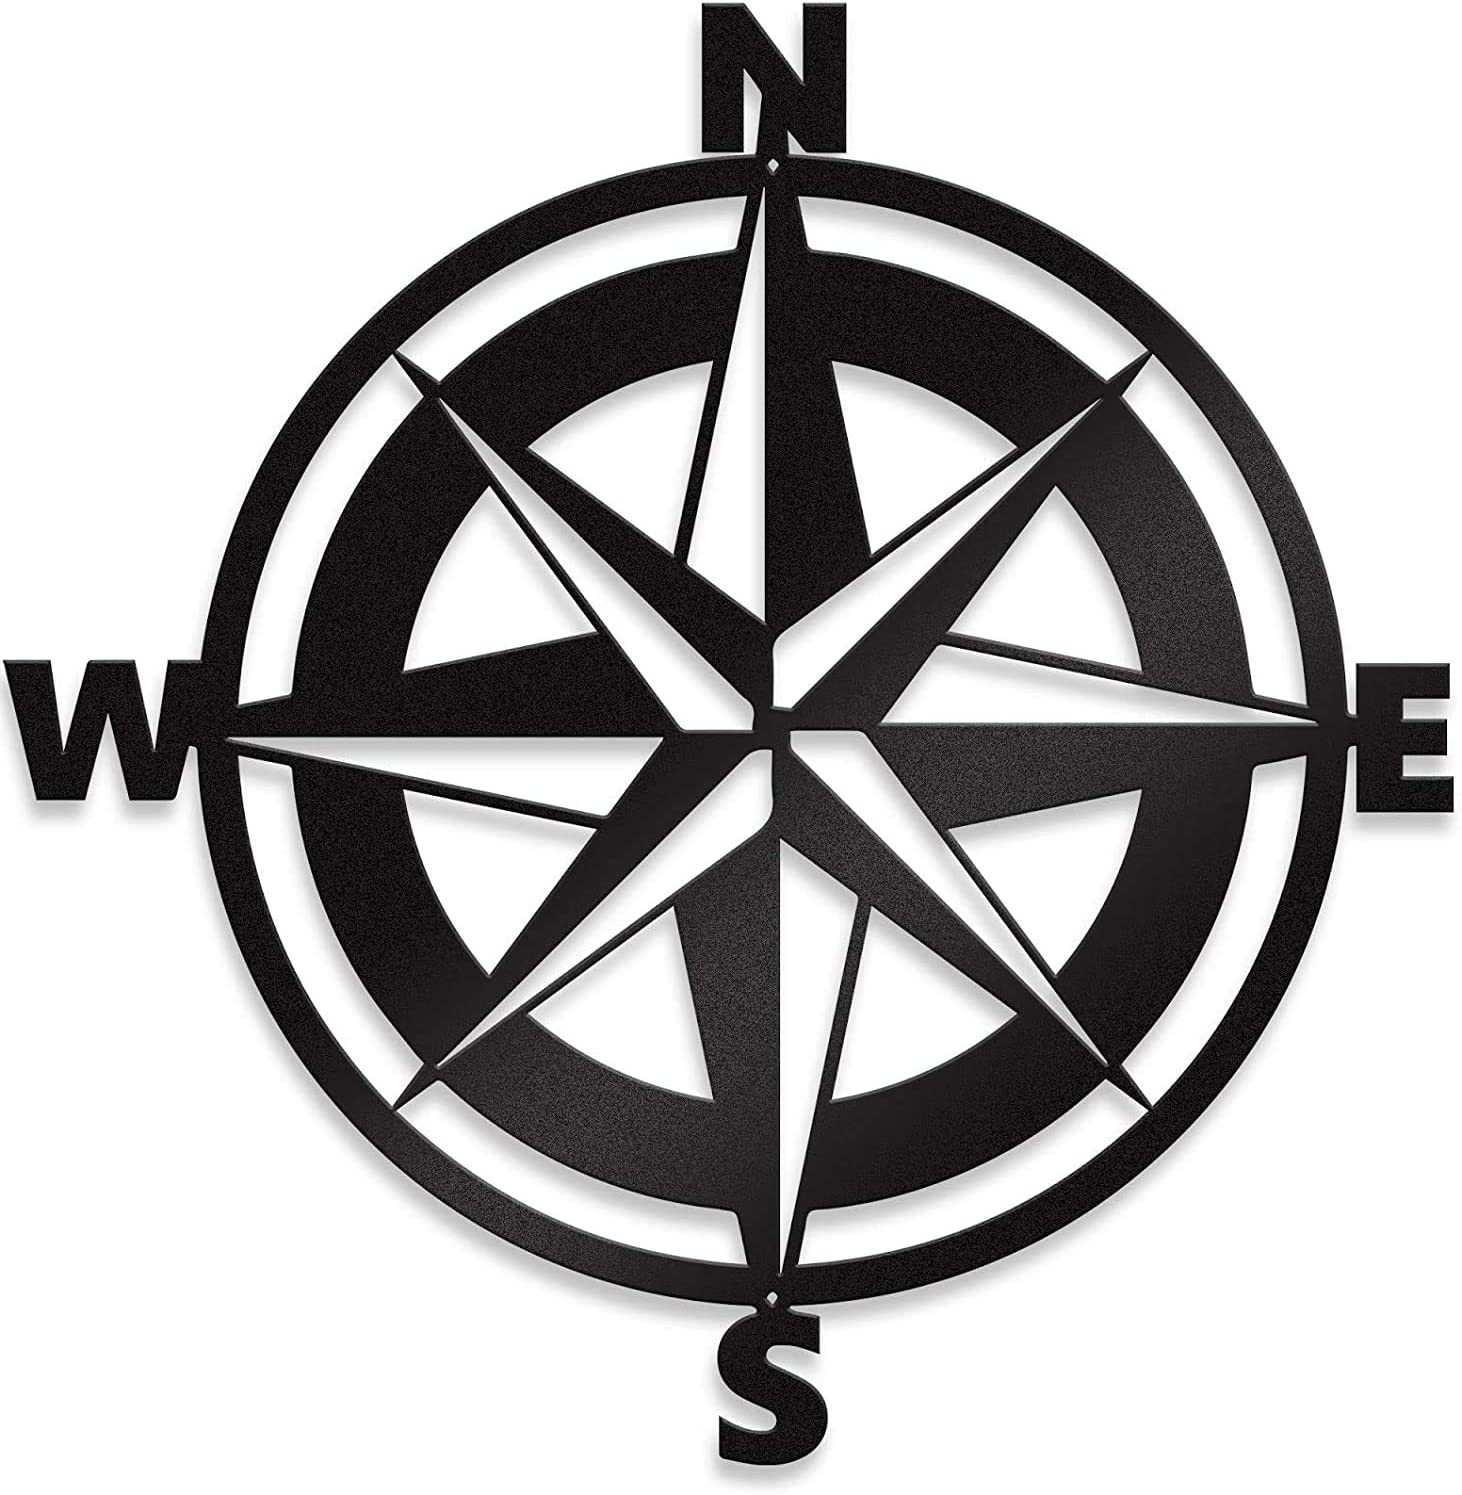 "Steel Roots Decor Nautical Compass Metal Wall Art & Room Decor - Nautical Decor Hanging Wall Decor for Home - Metal Farmhouse Decor Indoor or Outdoor Sign - (18"" Black, Metal)"